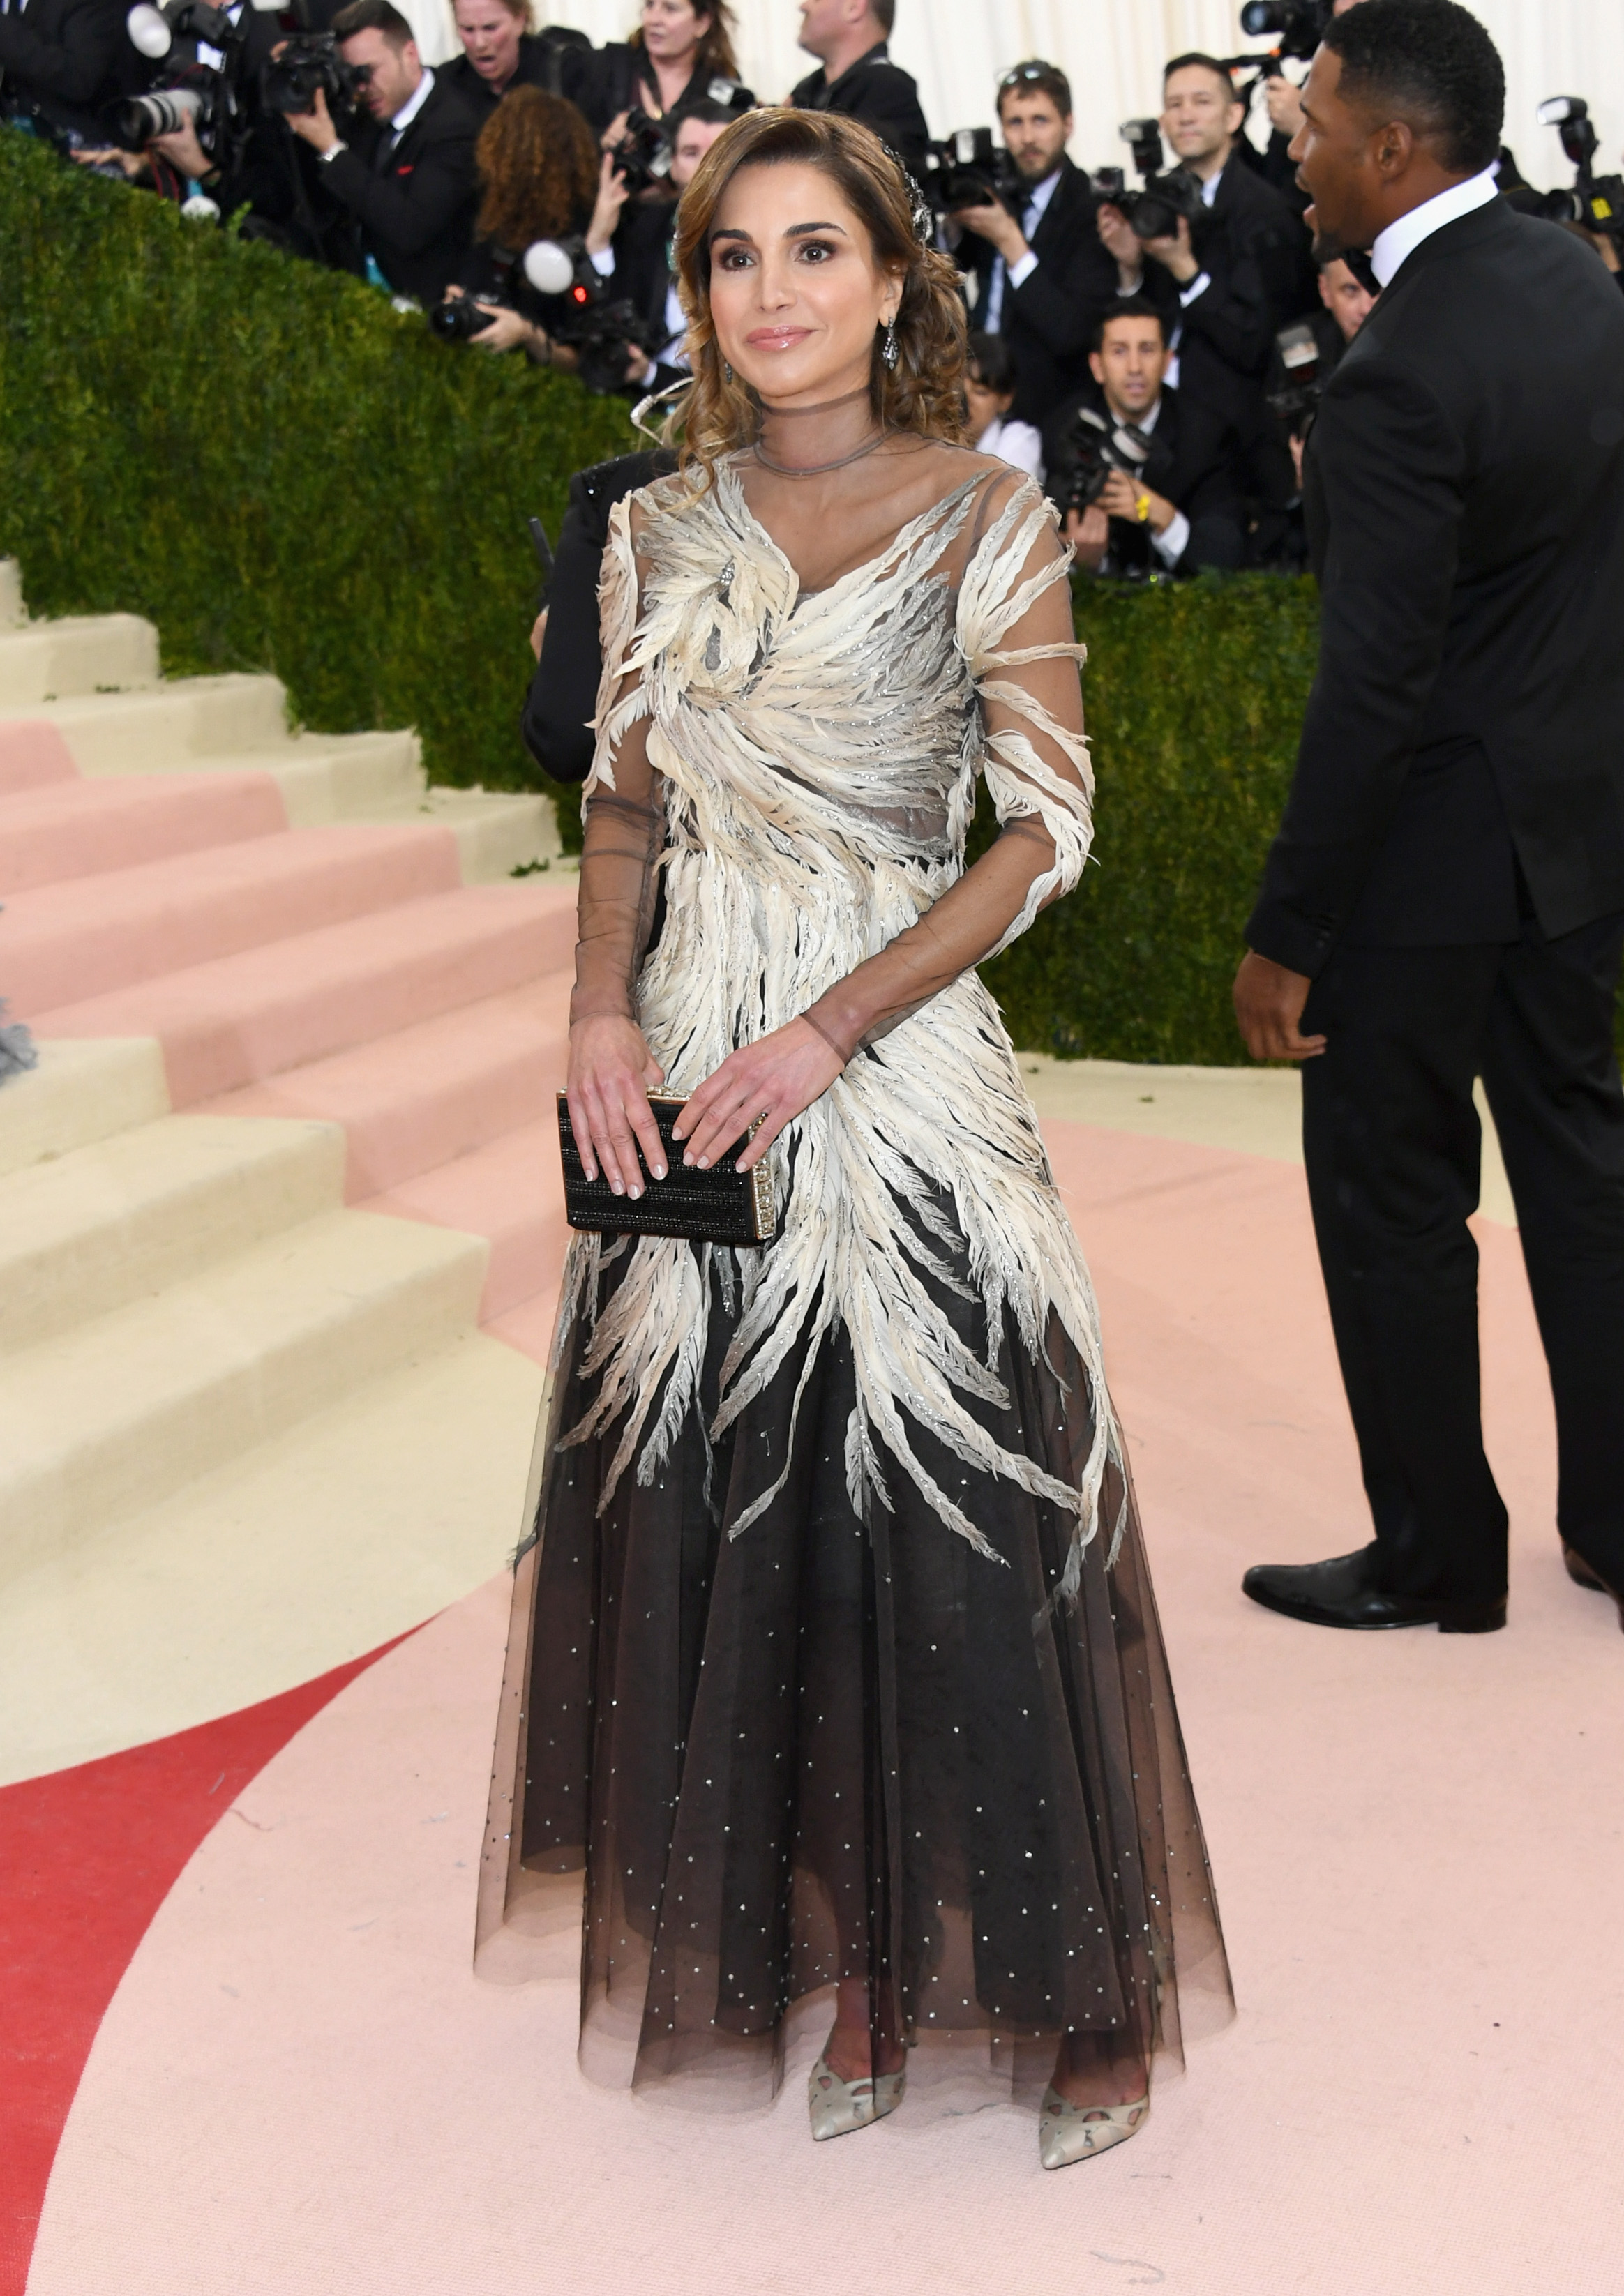 Queen Rania at the Met Gala